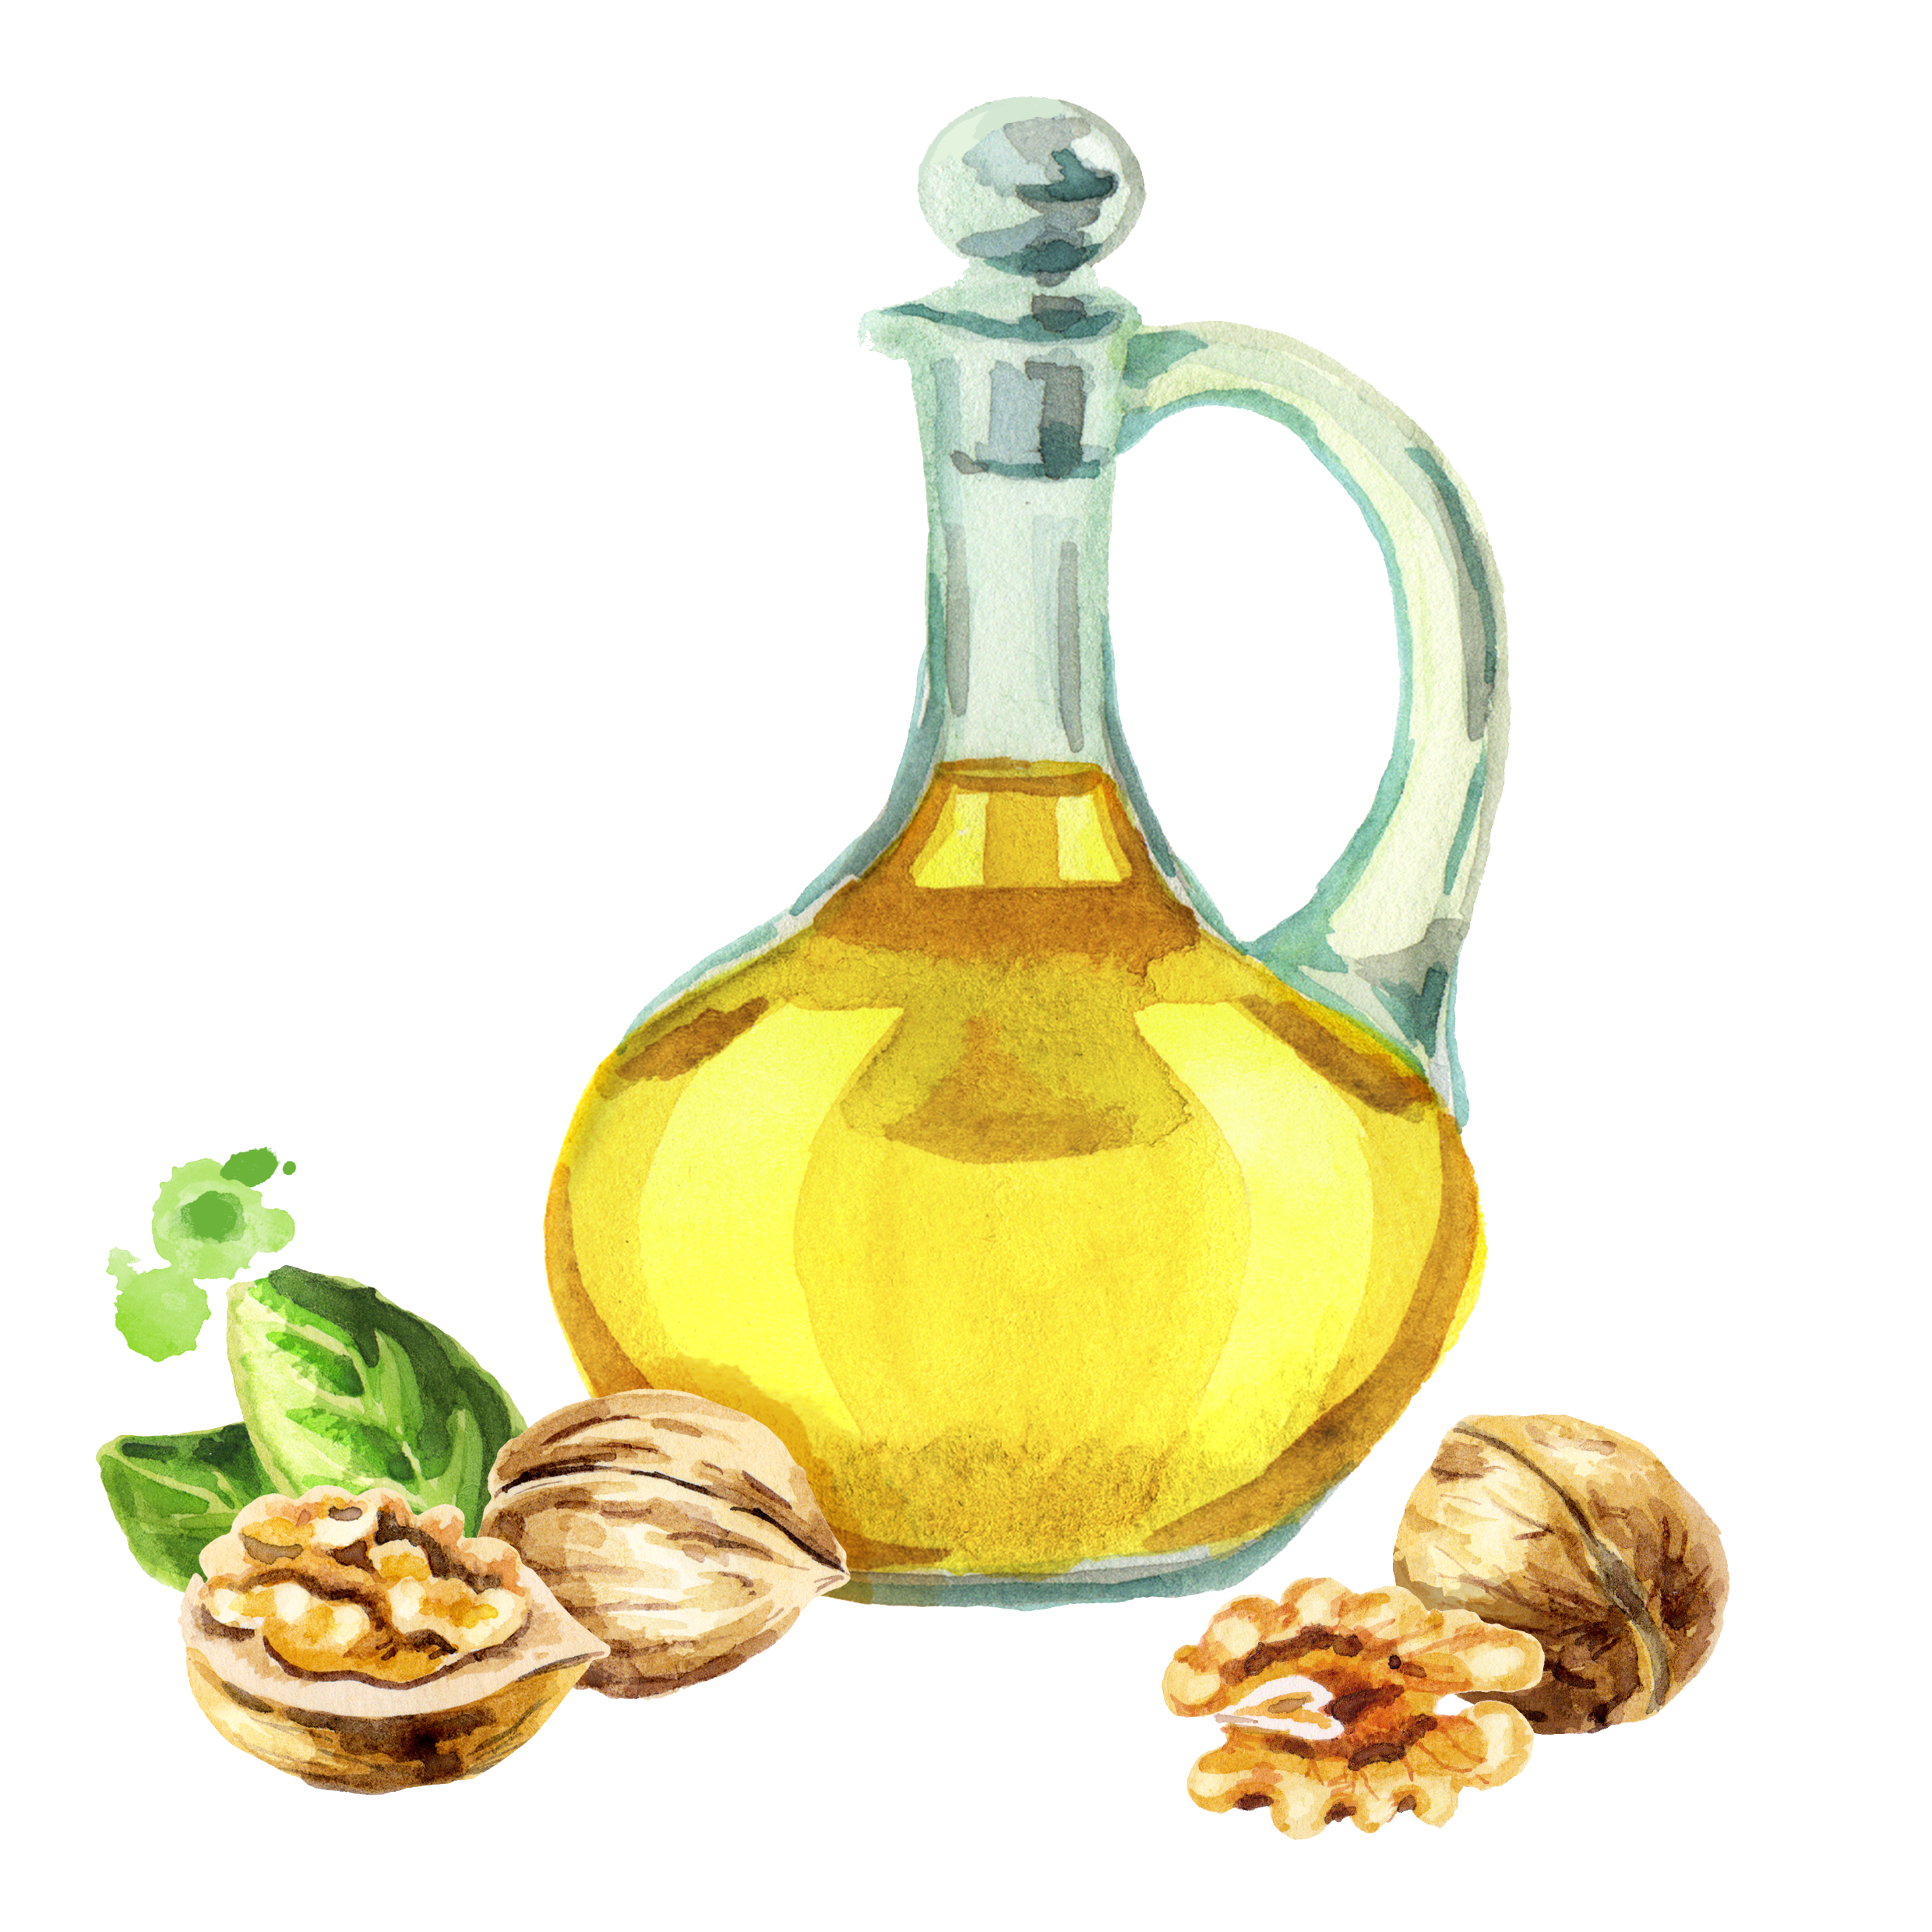 healthy walnut oil for cooking